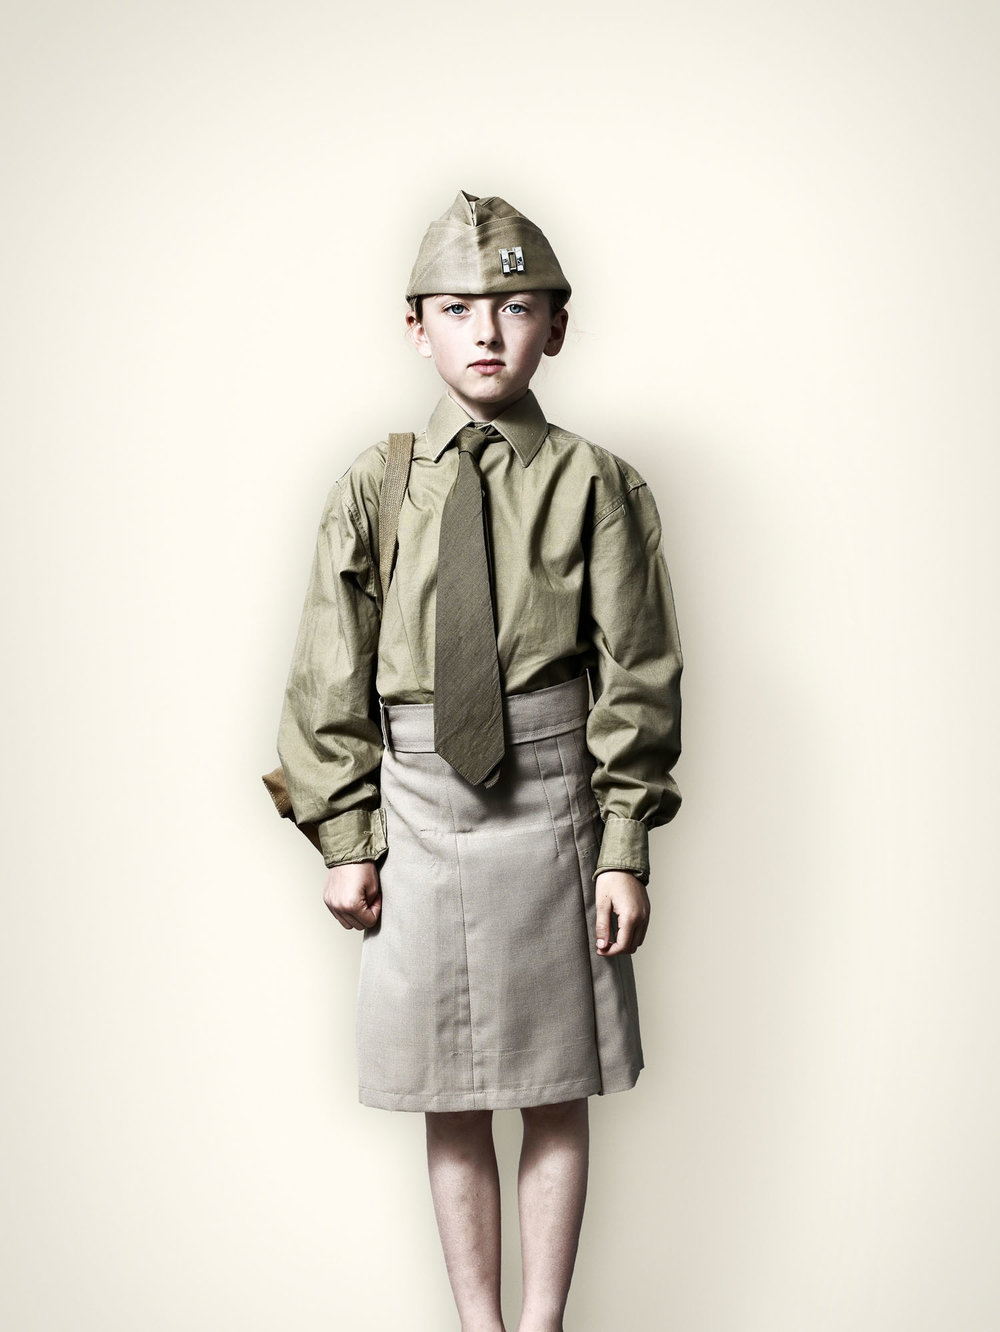 Girl in US Military Uniform (2008)